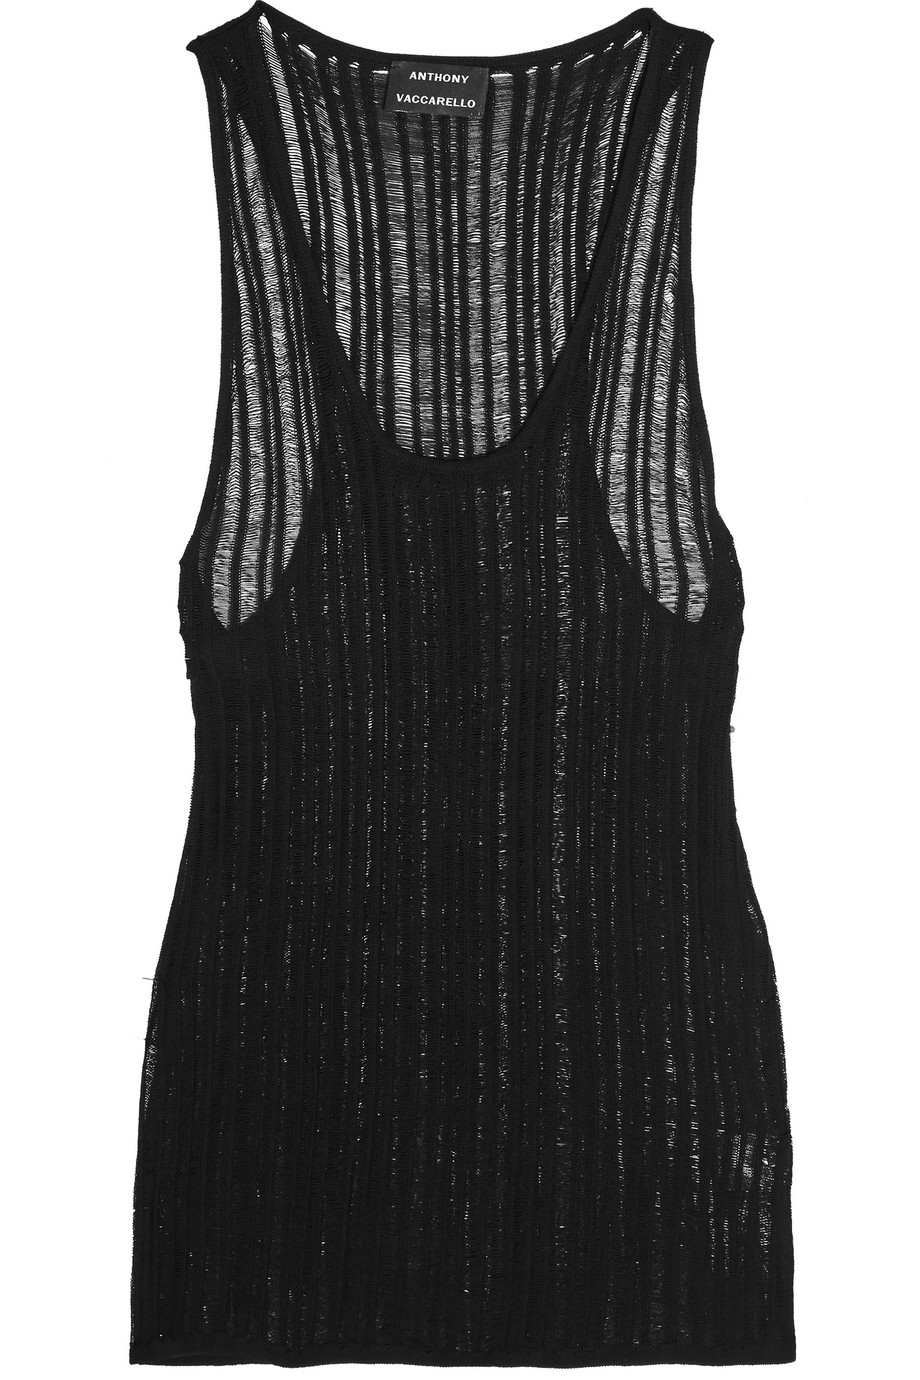 Open-Knit Tank, Anthony Vaccarello, Black, Women's, Size: S